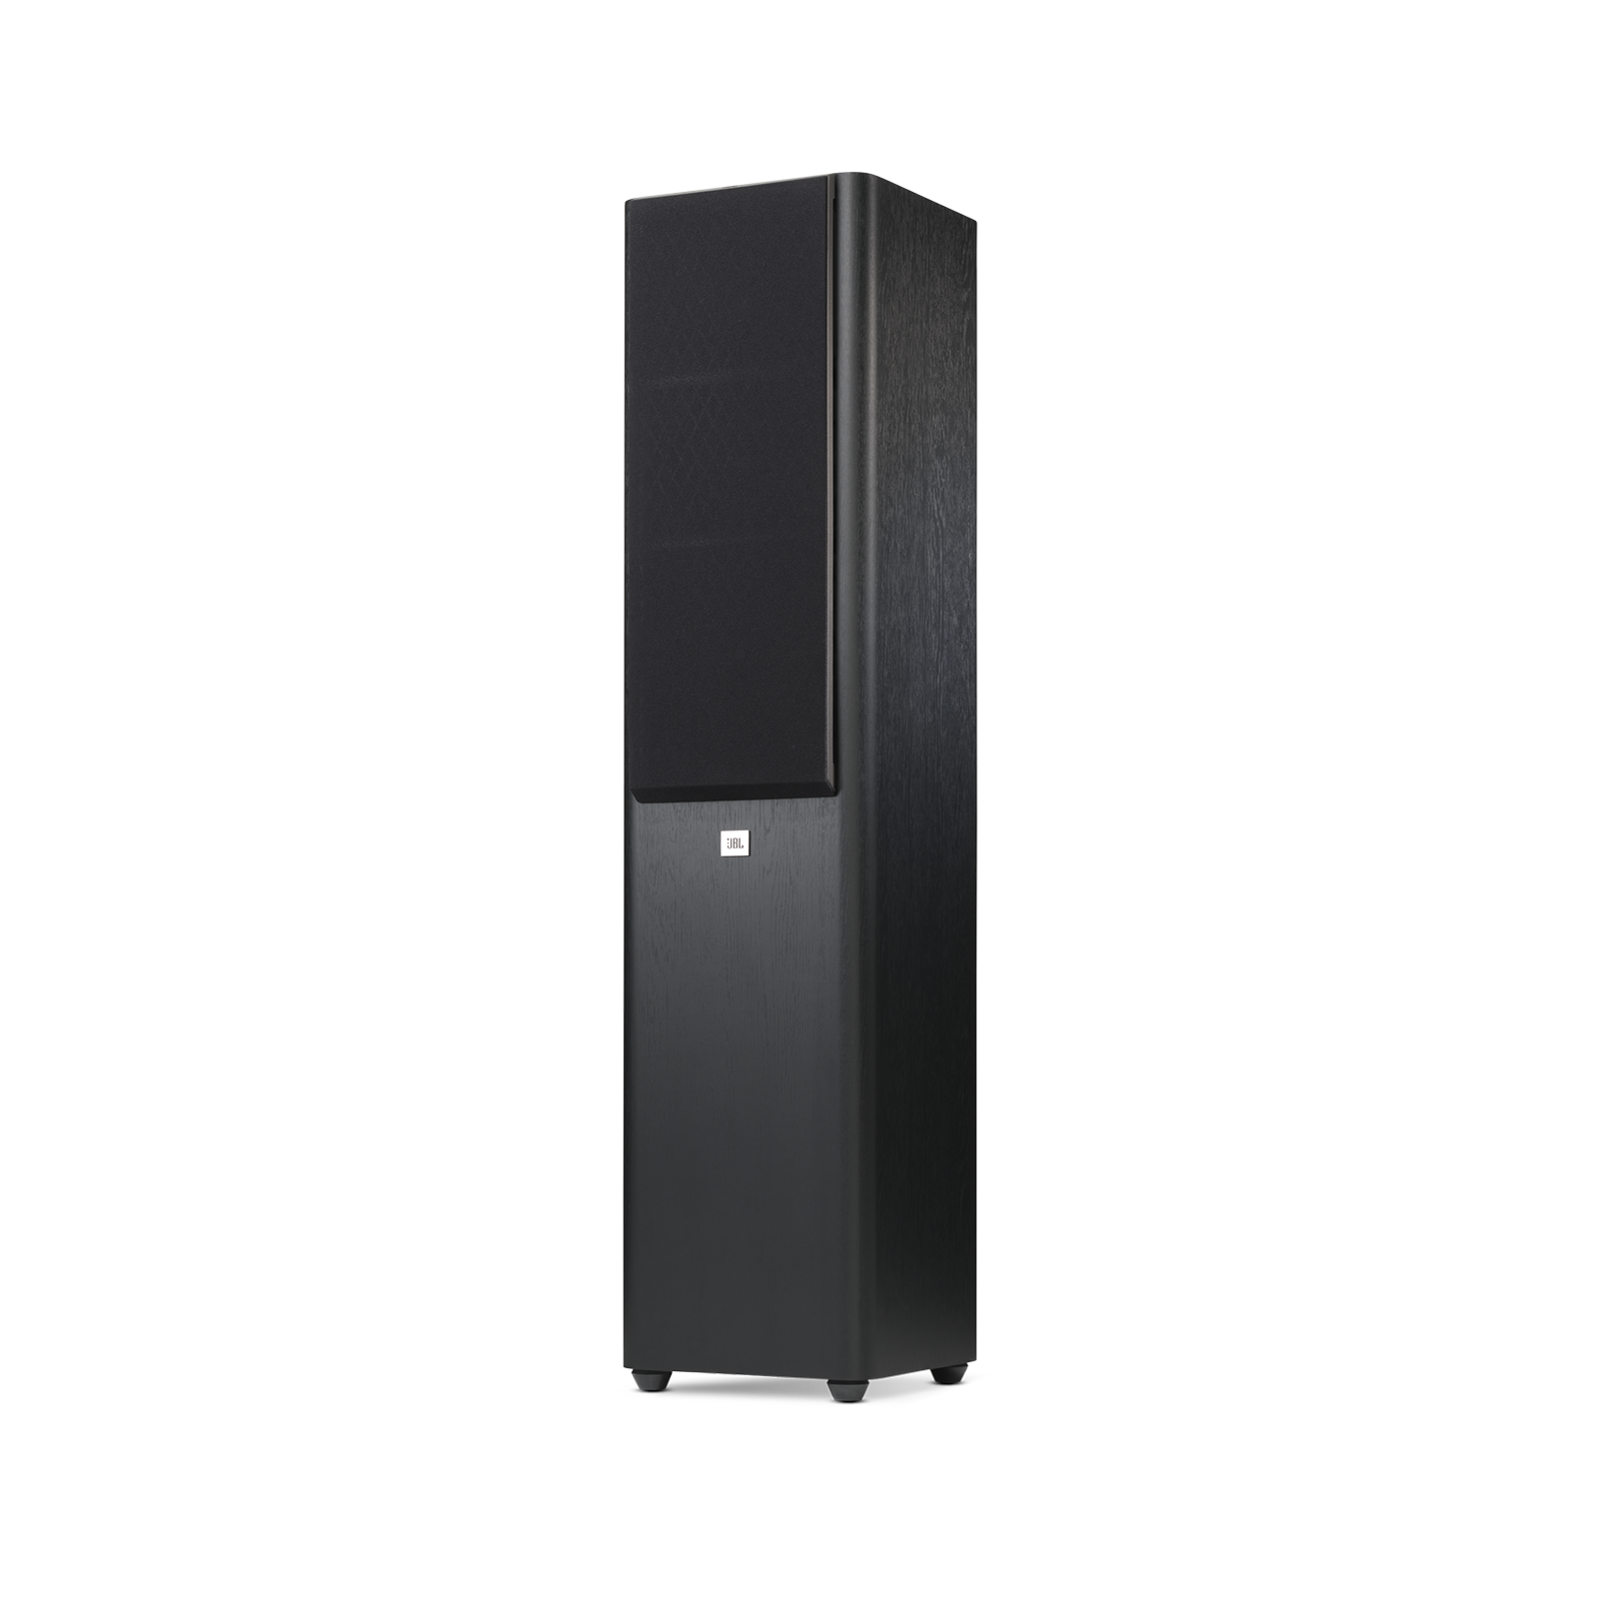 JBL Studio 270 refurbished Black